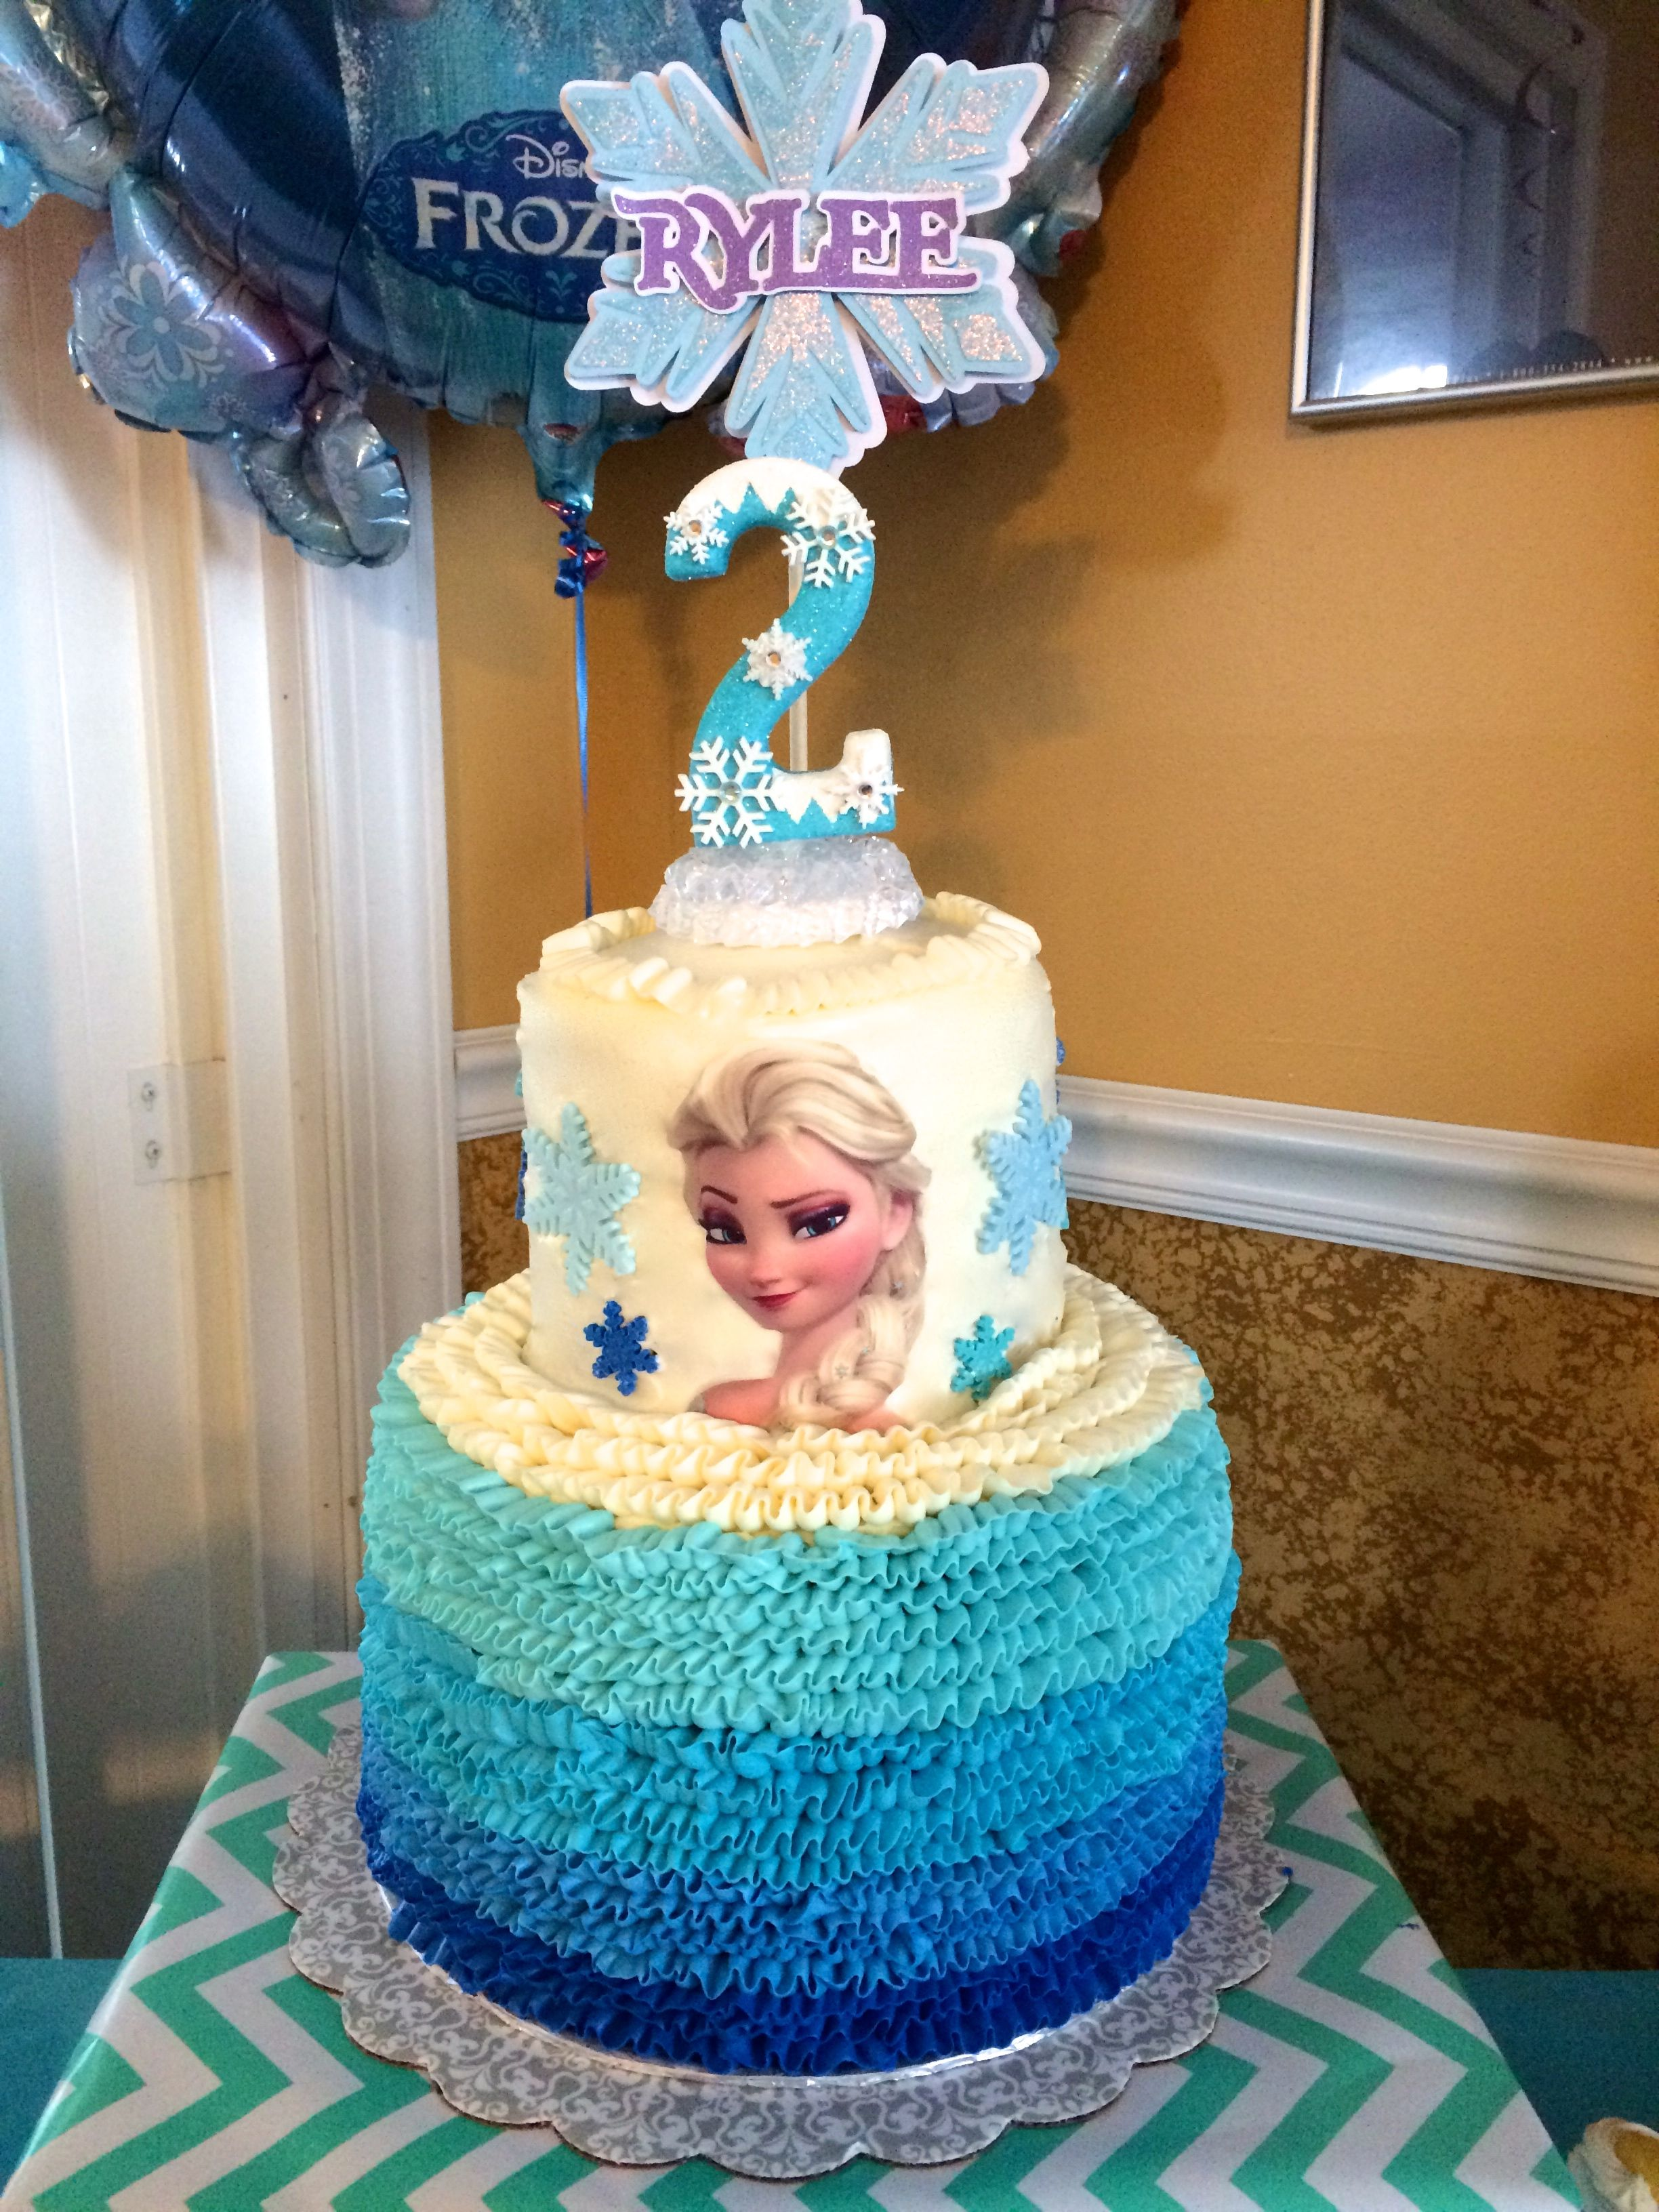 Here S The Frozen Birthday Cake That I Made For My 2 Year Old